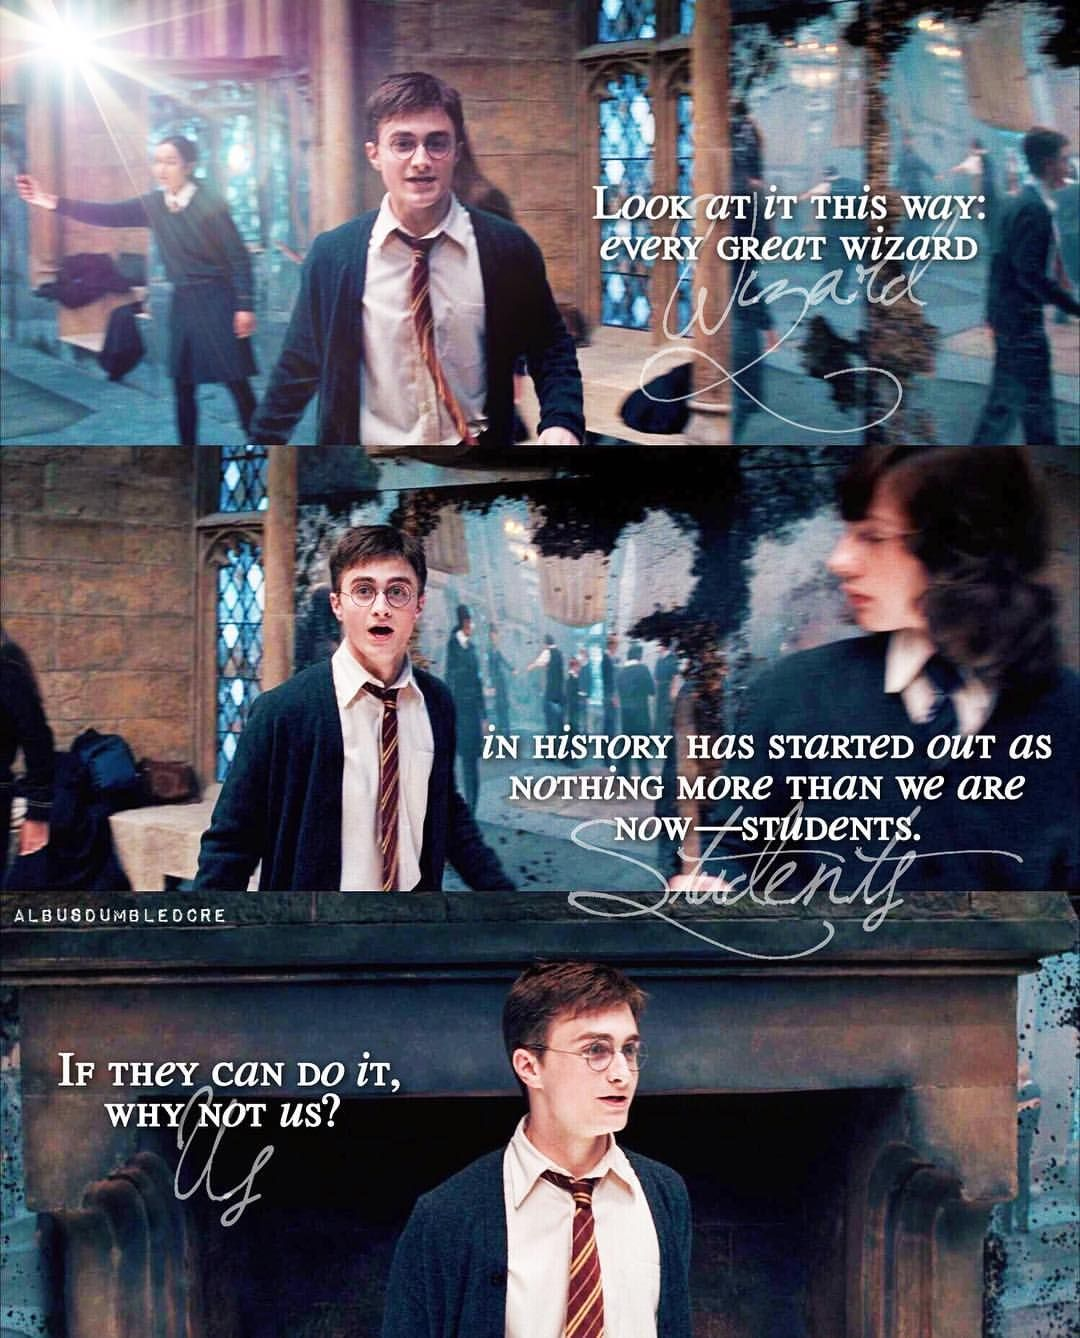 If They Can Do It Why Not Us Harry James Potter Daniel Radcliffe Harry Potter Harry Potter Universal